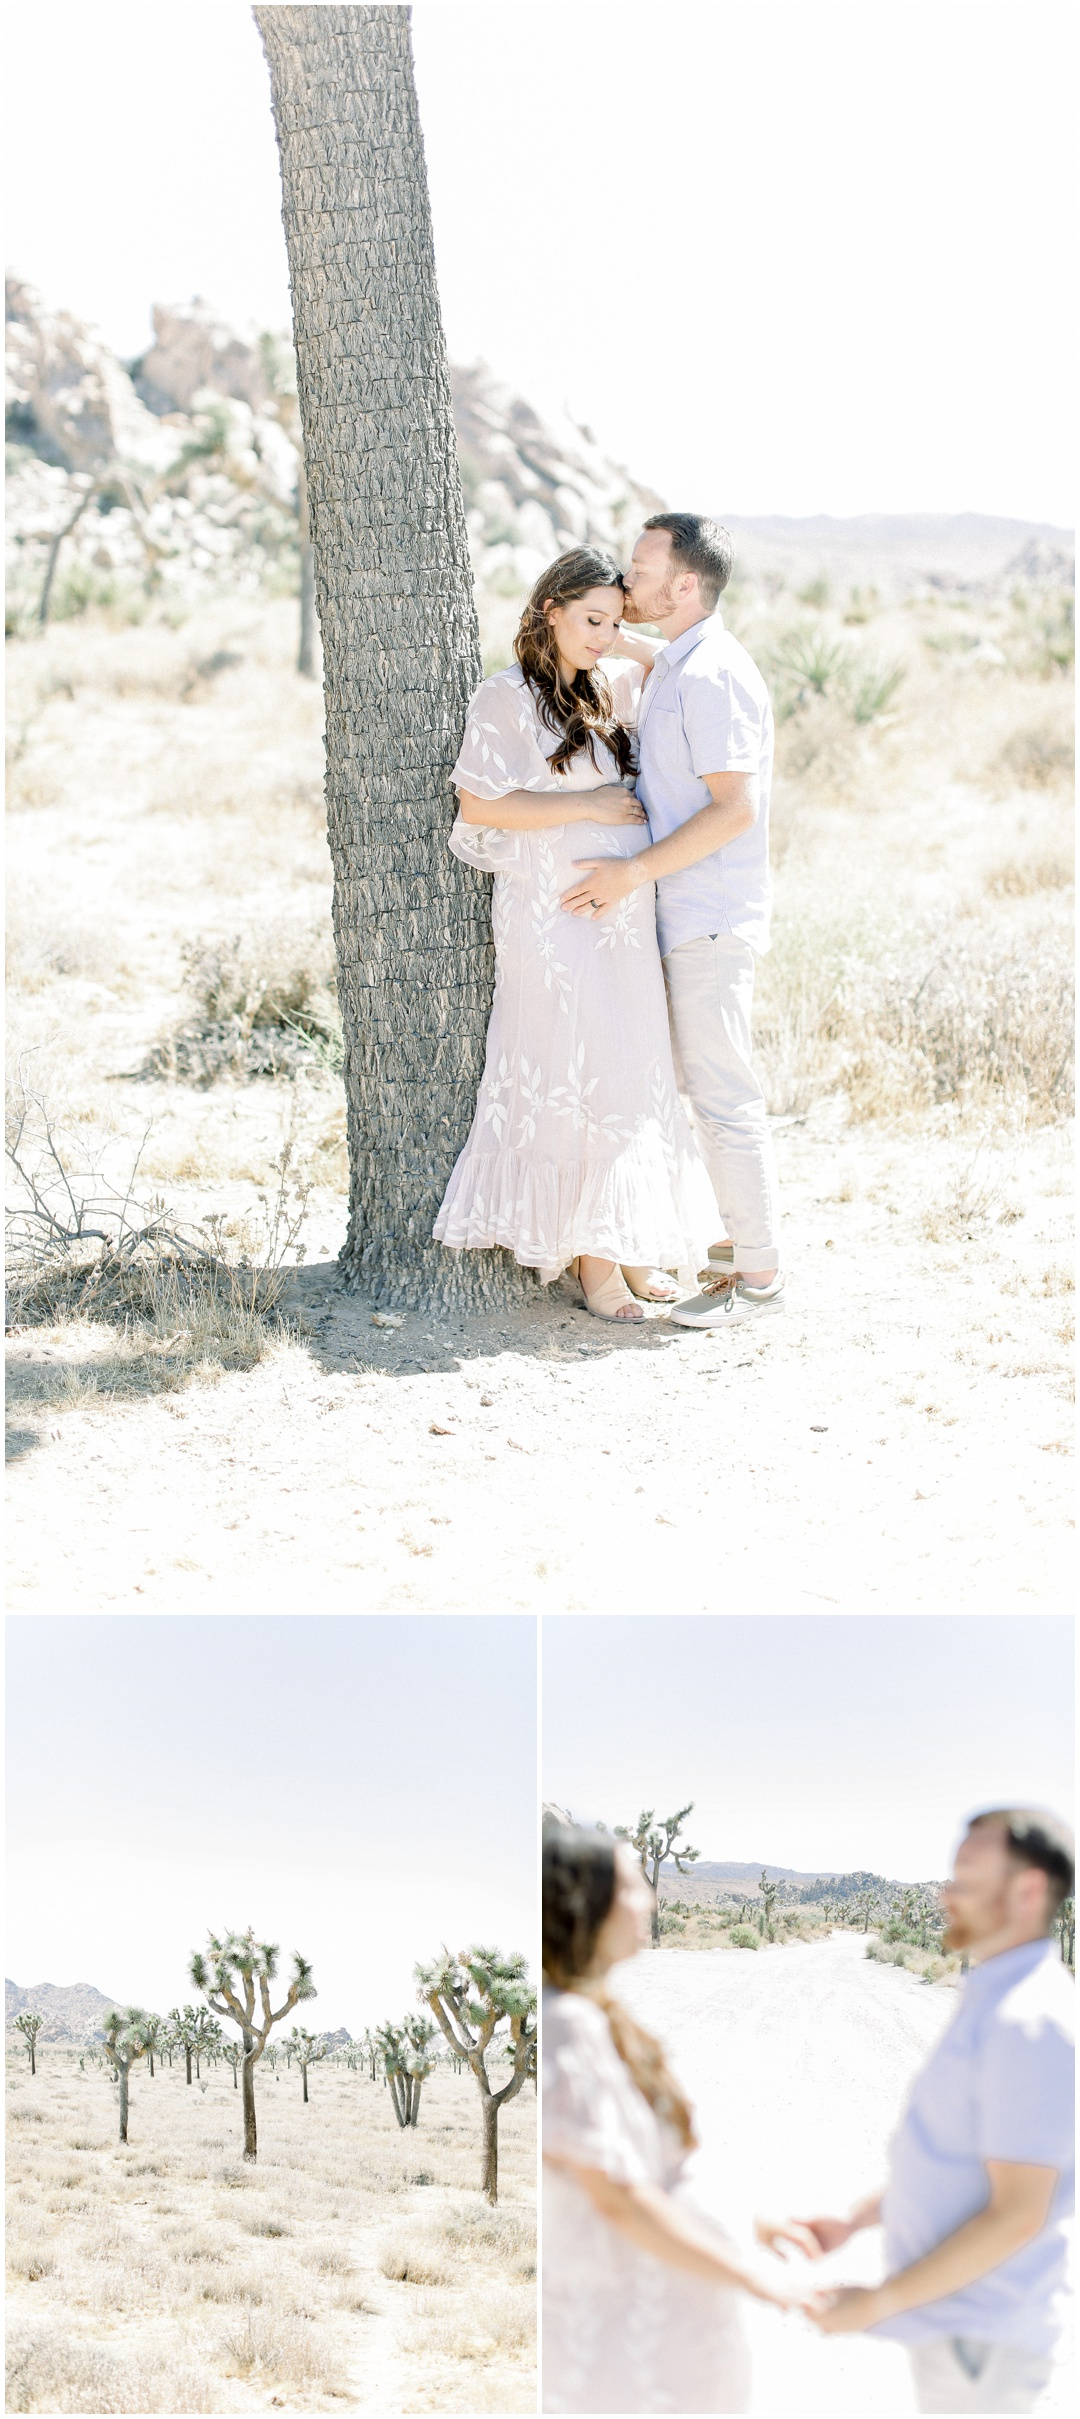 Newport_Beach_Joshua_Tree_Maternity_Photos_Session_Leliani_Hailey_Shane_Hailey_Maternity_Session__4265.jpg